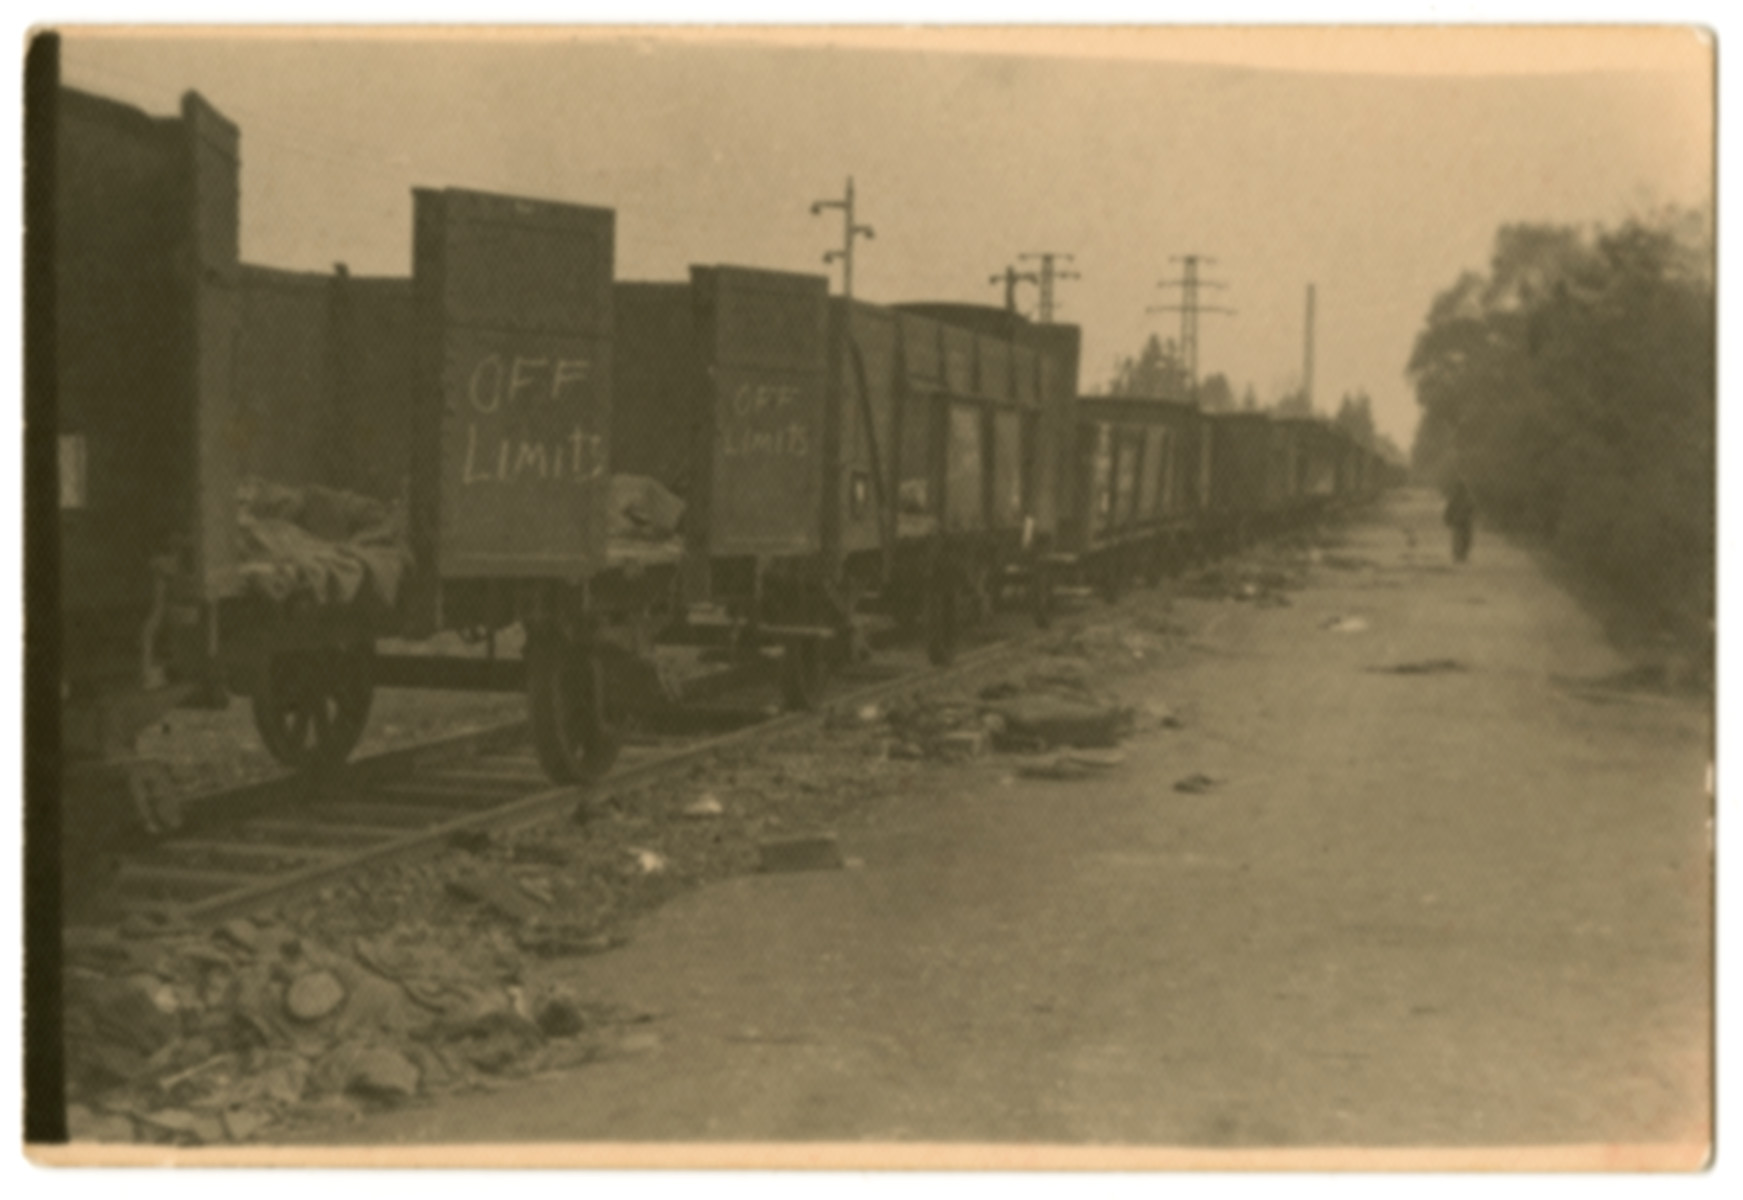 View of the Dachau death train taken shortly after liberation.